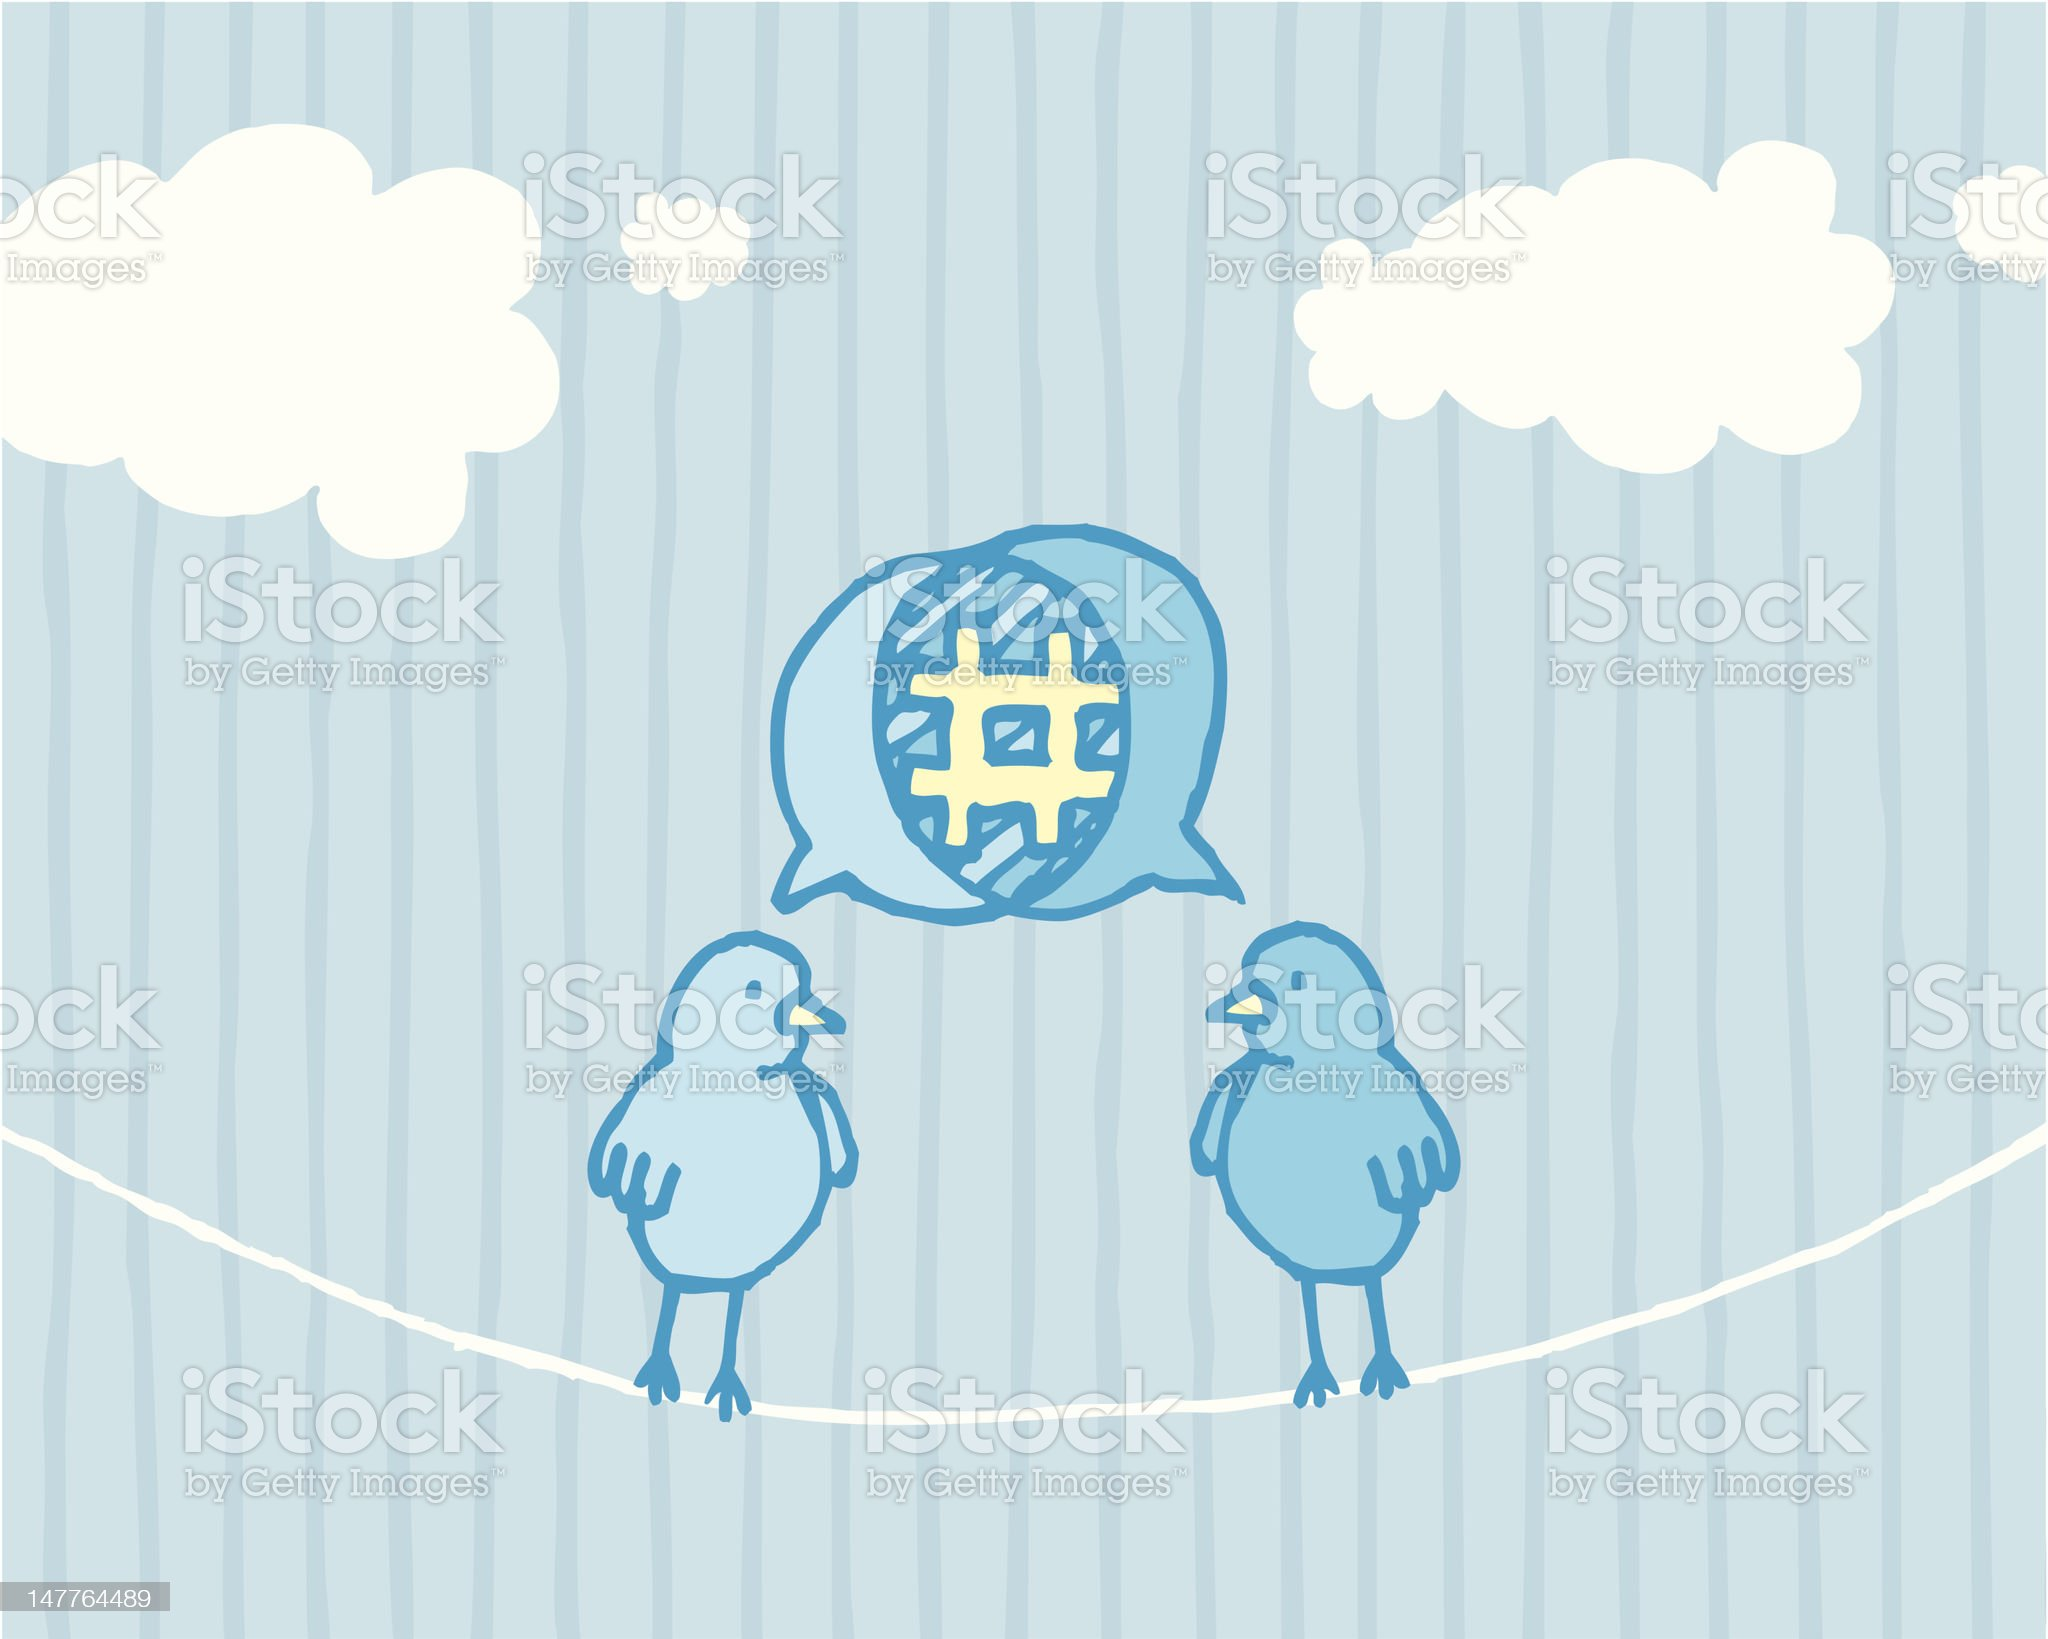 Birds sharing and tweeting / Social media dialog royalty-free stock vector art